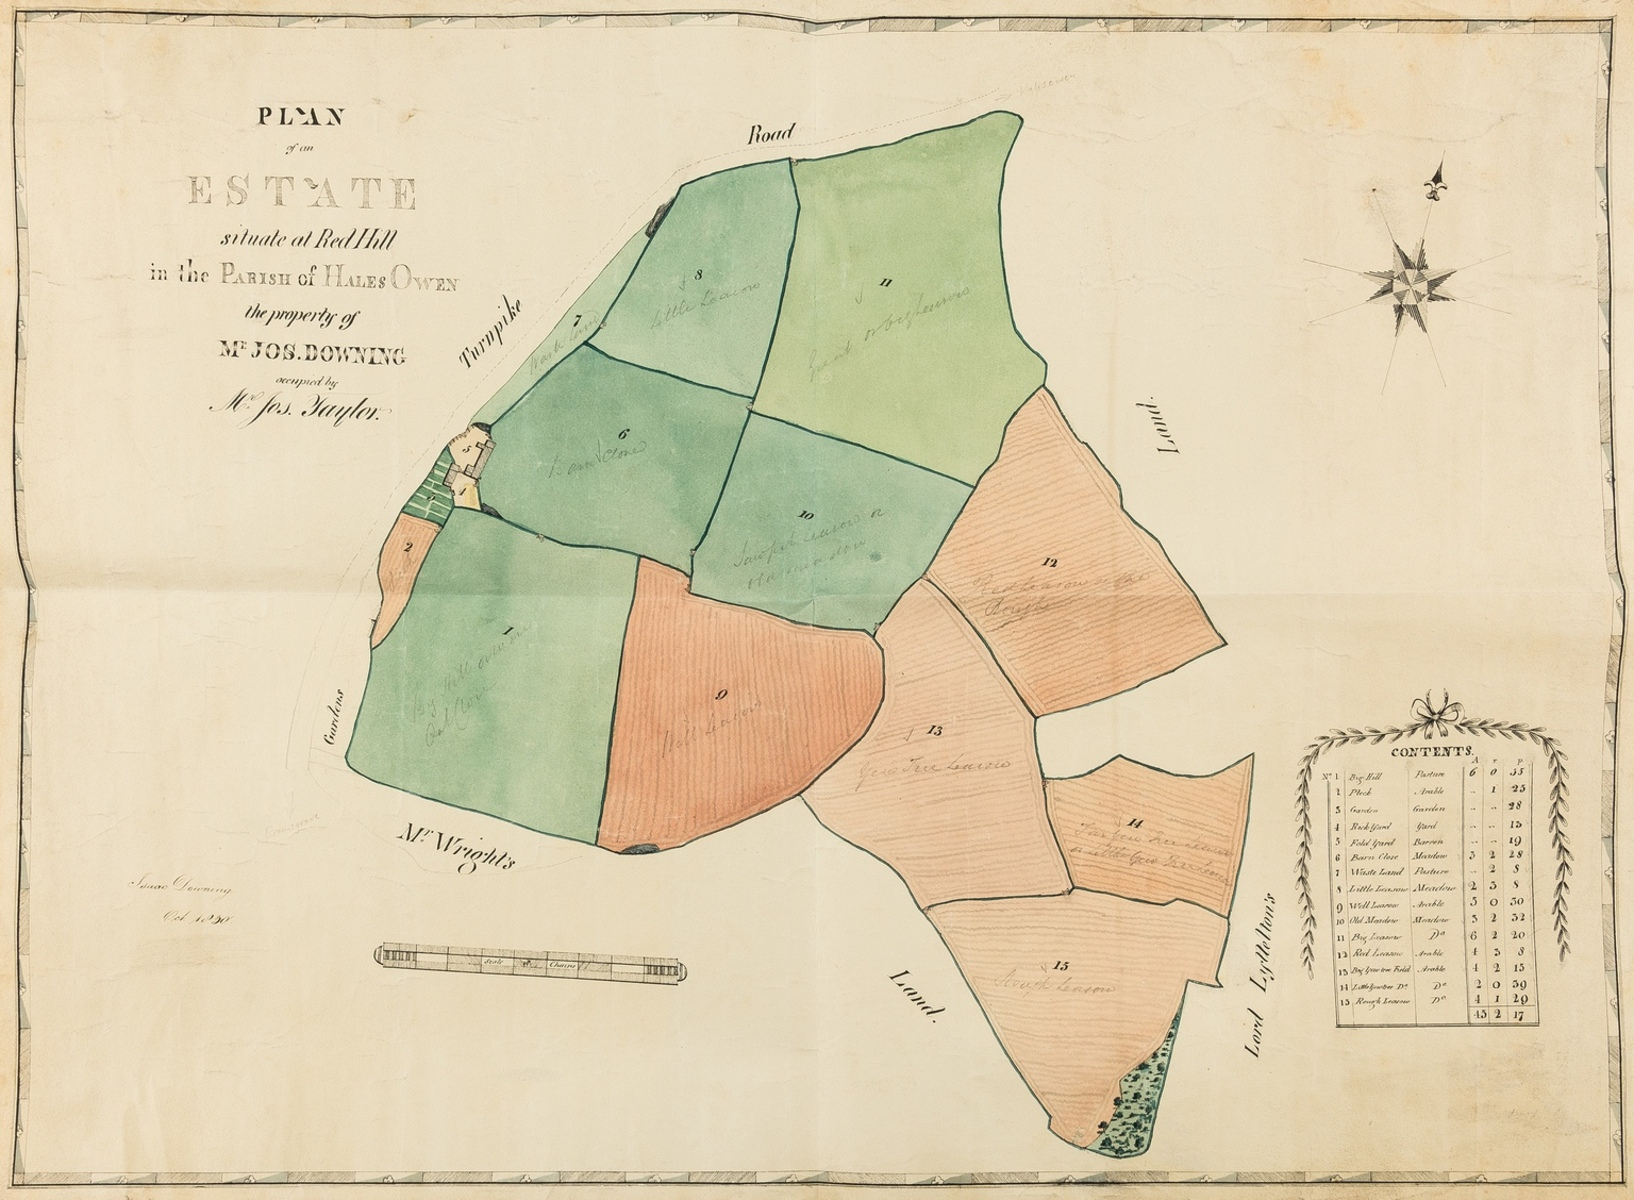 Estate Plans.- Downing (Isaac) Plan of an Estate situate at Red Hill in the Parish of Hales Owen …